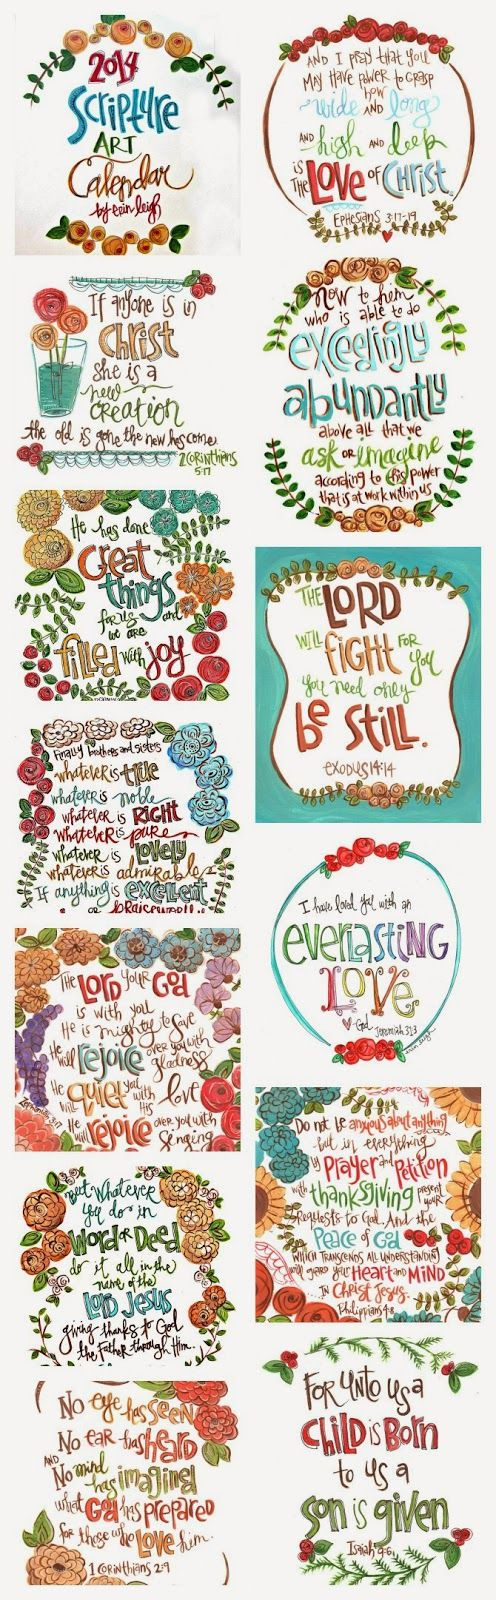 Art by Erin Leigh: 2014 Scripture Art Calendar is here!